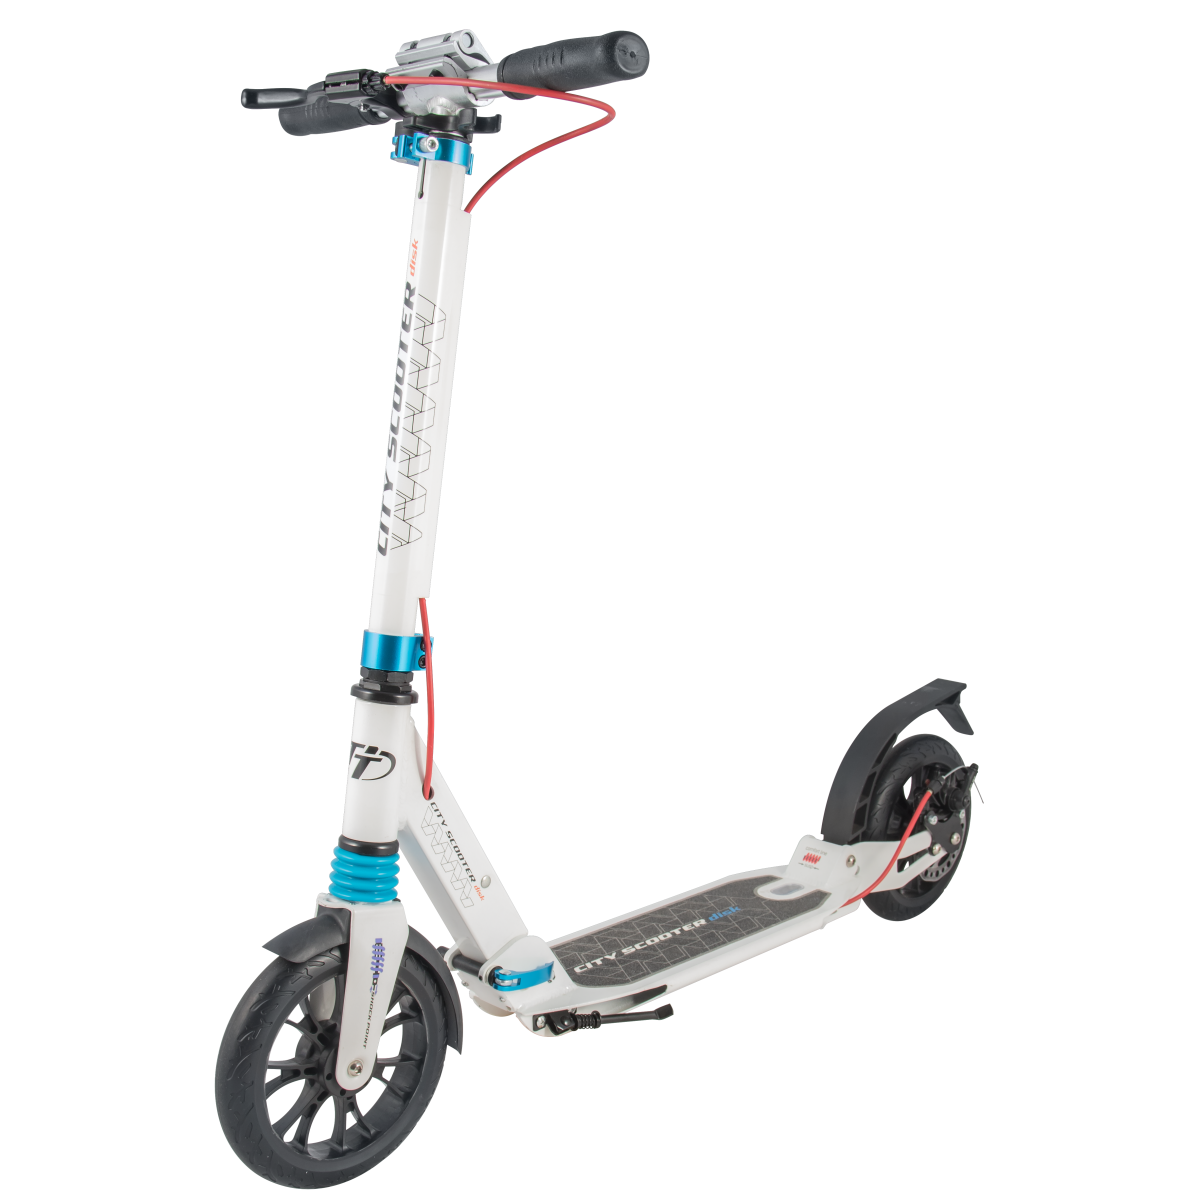 Самокат TechTeam City Scooter Disk Brake 2019 белый